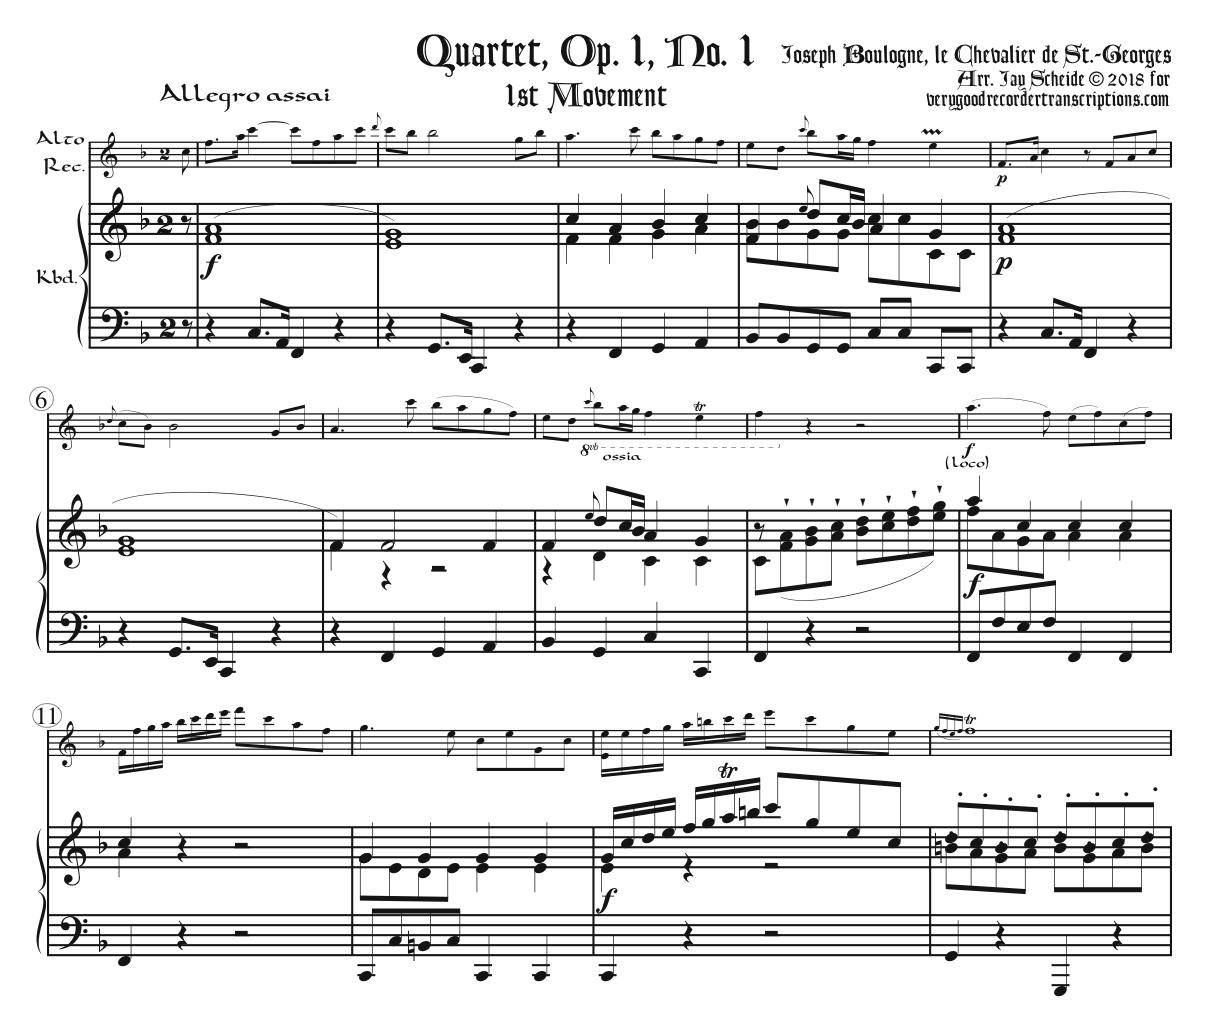 Quartet, Op. 1, No. 1, arr. for Alto doubling Tenor or Soprano